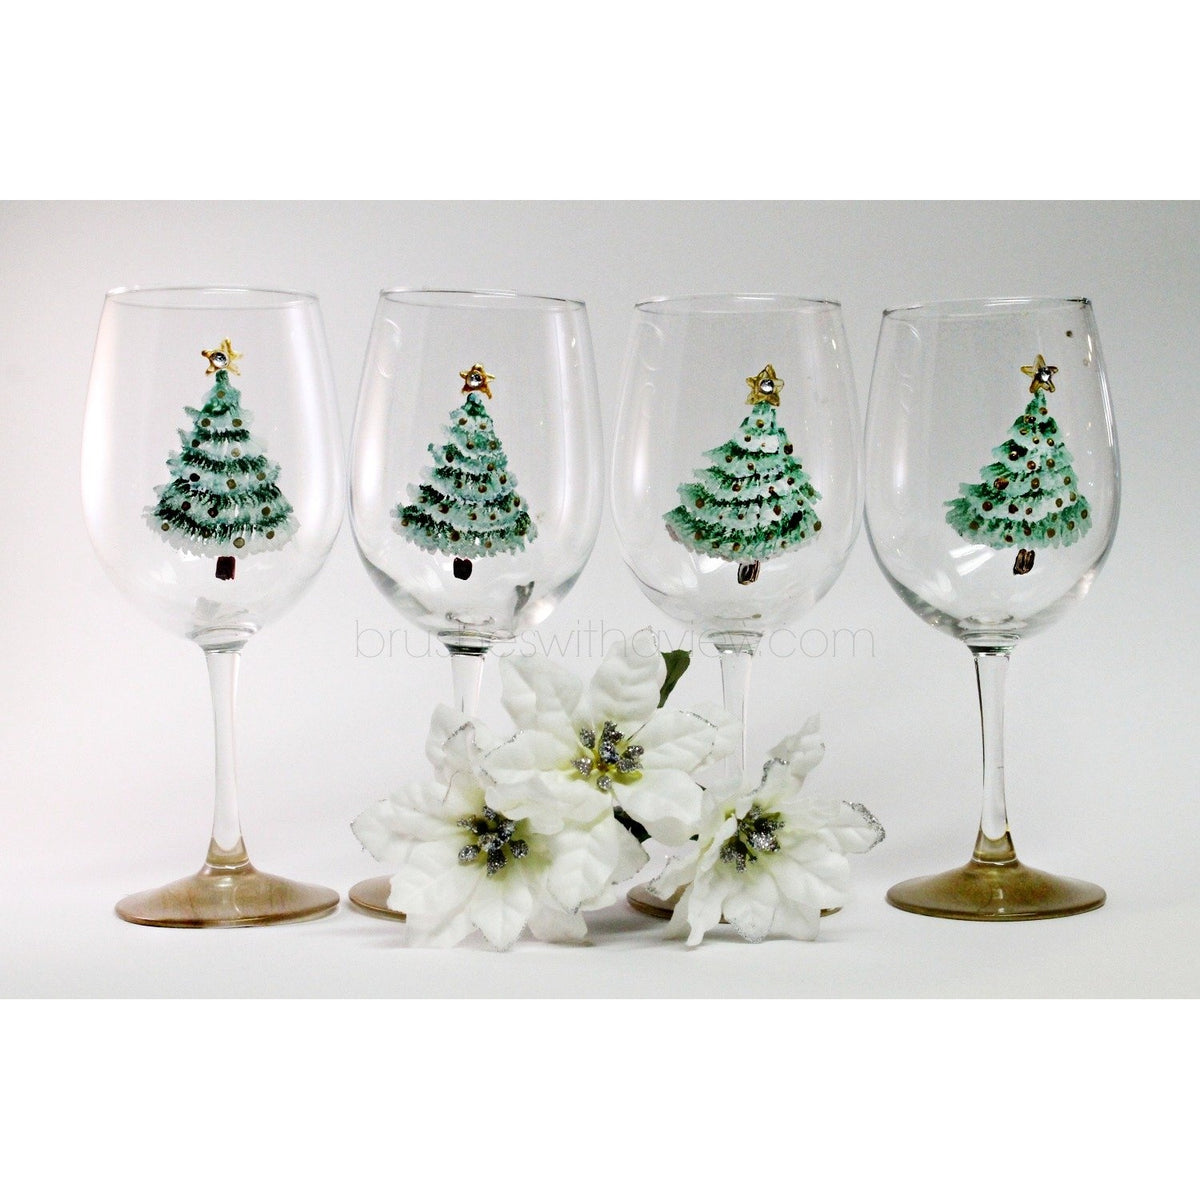 Christmas Wine Glasses Set Of 4 Hand Painted Christmas Glasses